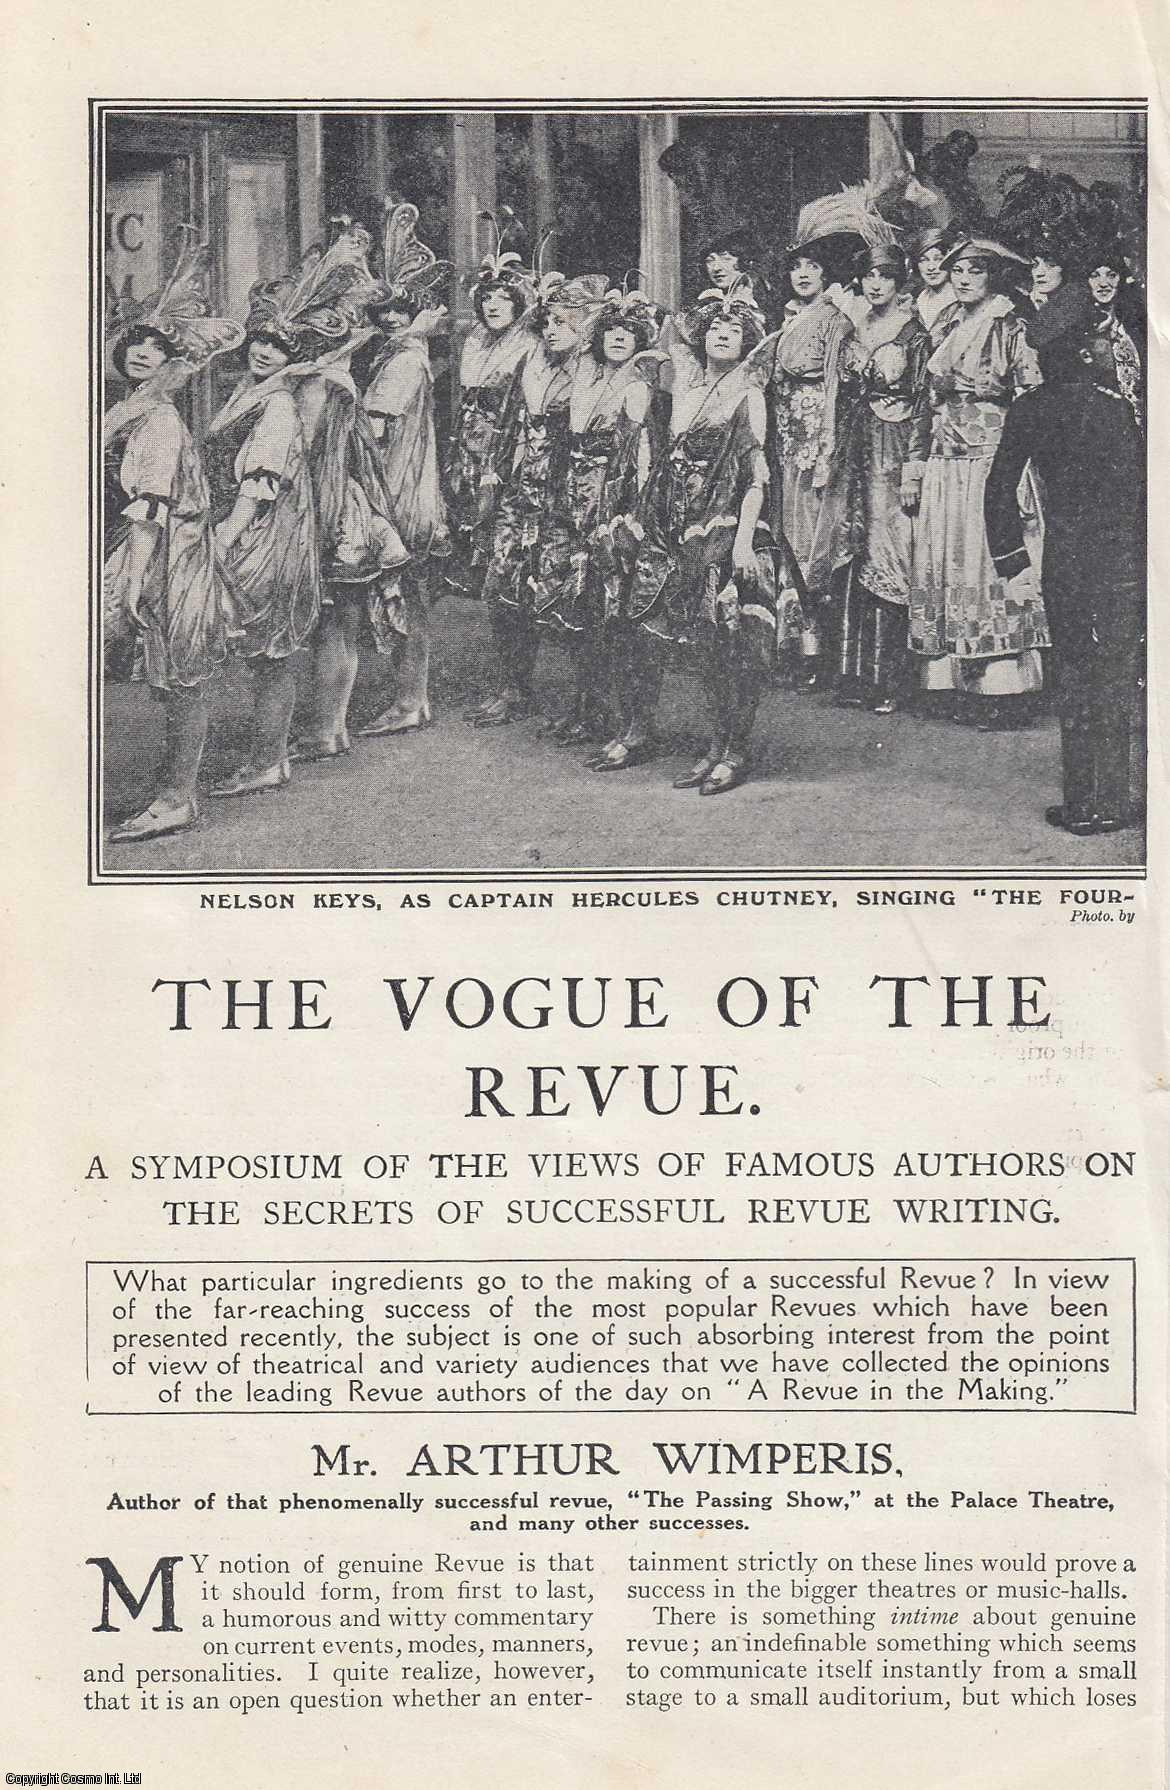 UNSTATED - The Vogue of The Revue. A Symposium of The Views of Famous Authors on The Secrets of Successful Revue Writing. An original article from The Strand Magazine, 1915.